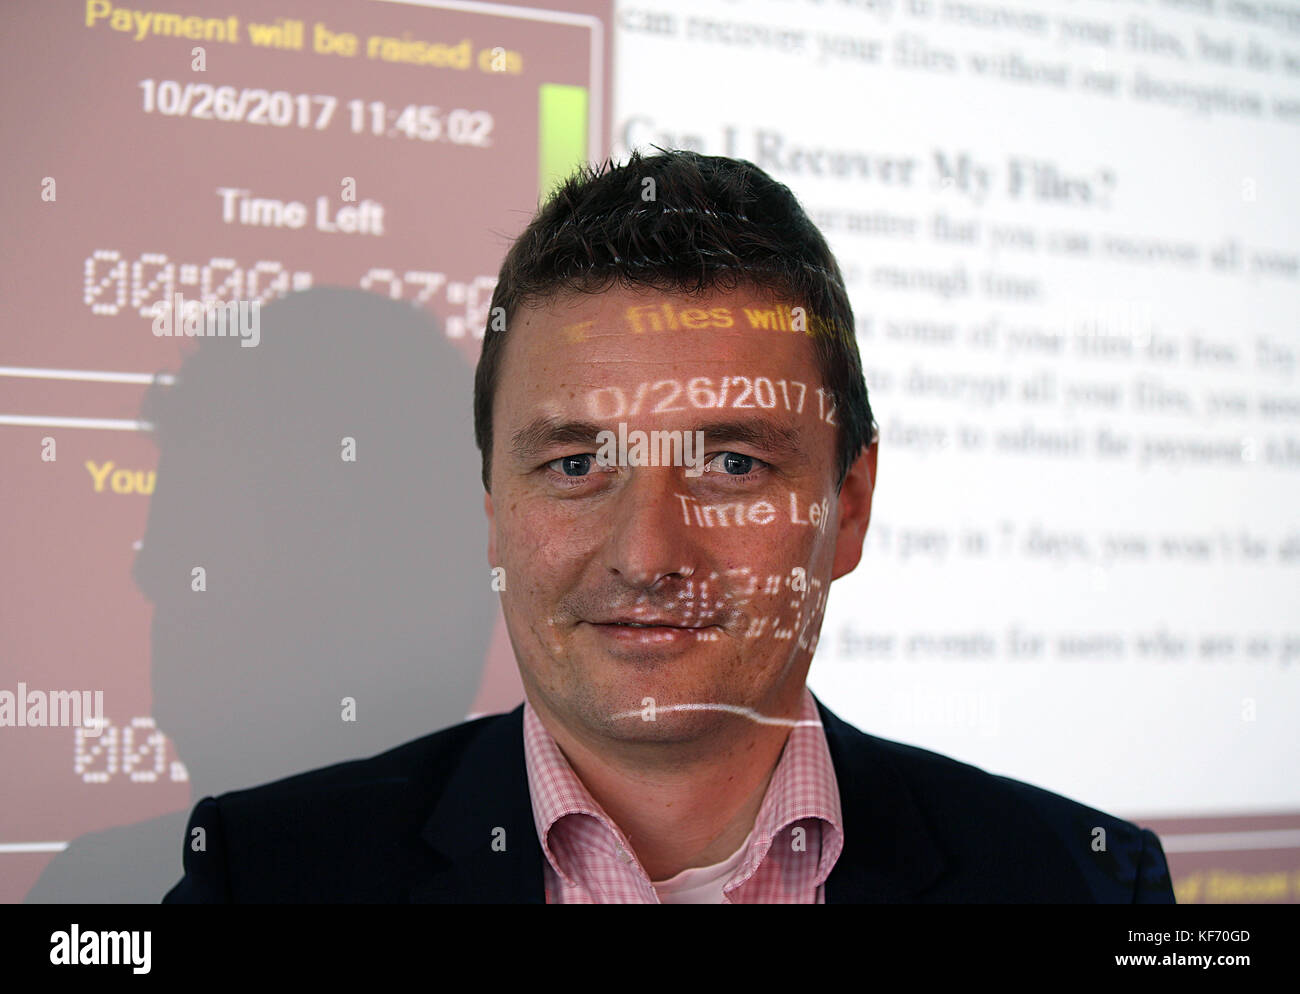 The director of the Cyber Security divison at the Frauenhofer Institute FKIE, Michael Meier, standing in front of - Stock Image